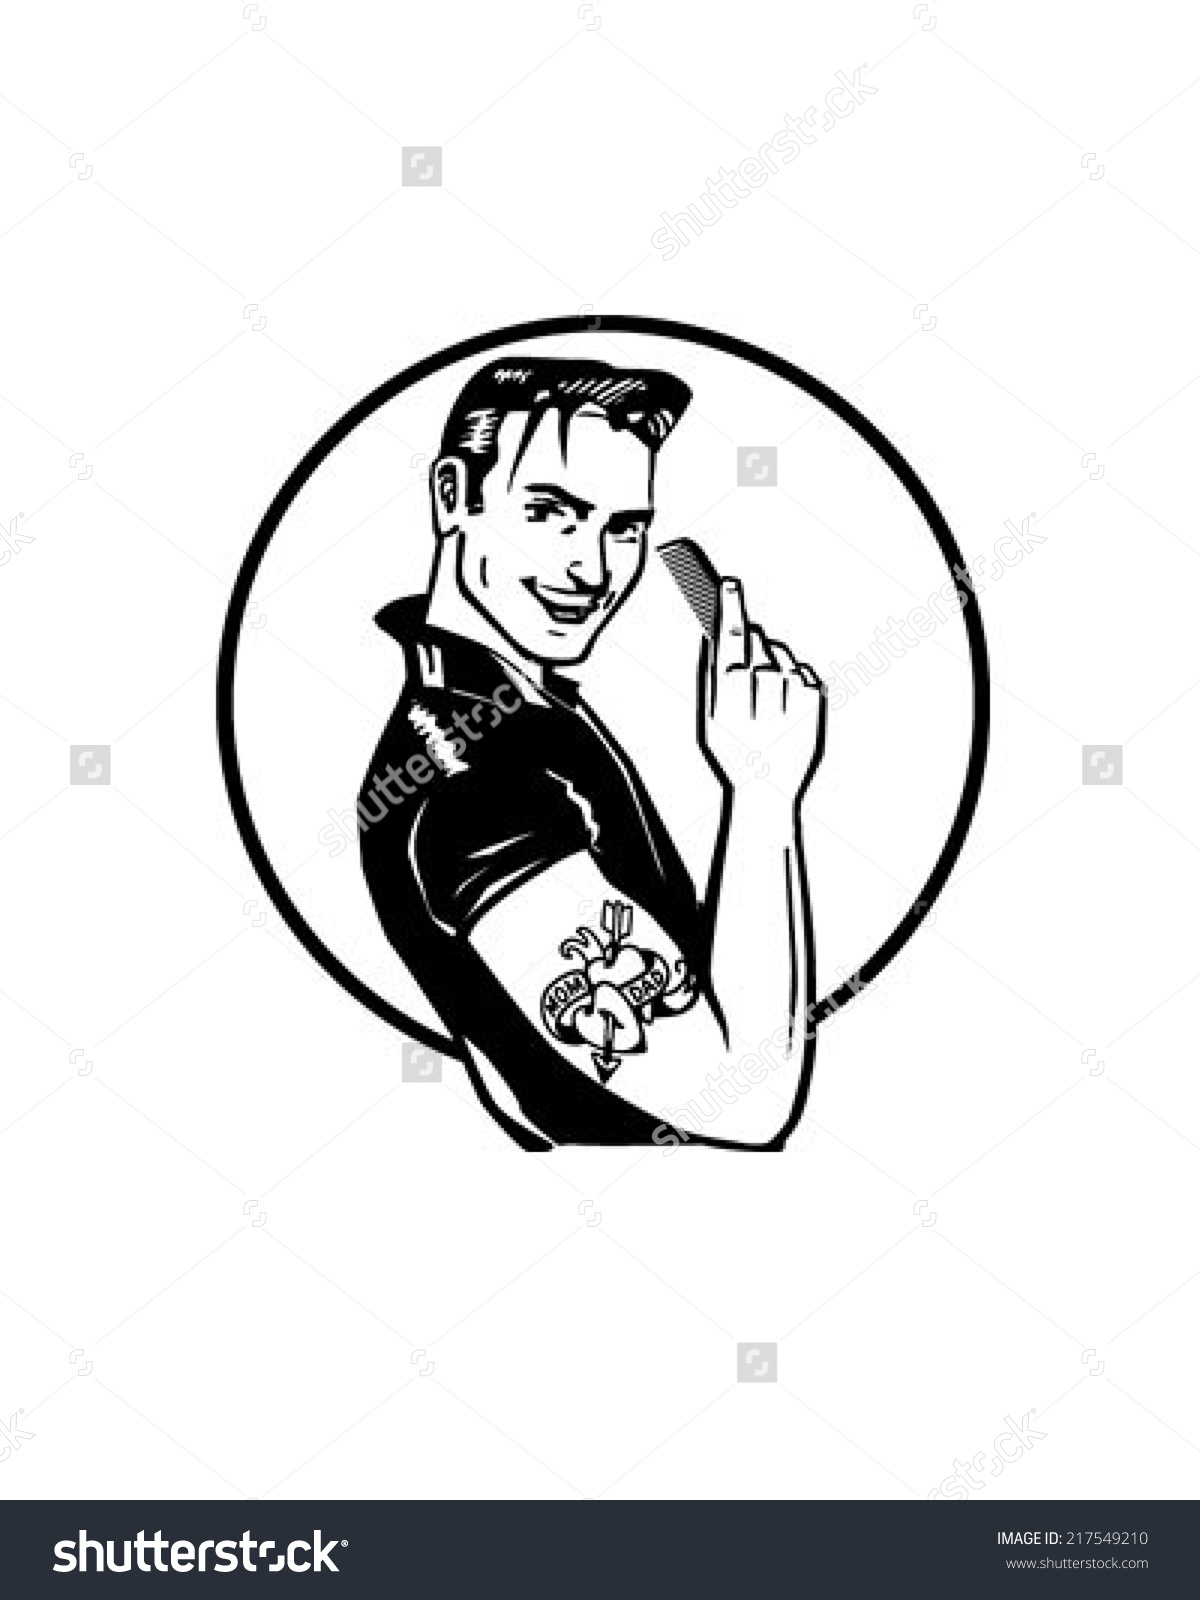 Fifties Greaser Retro Clipart Illustration Stock Vector 217549210.